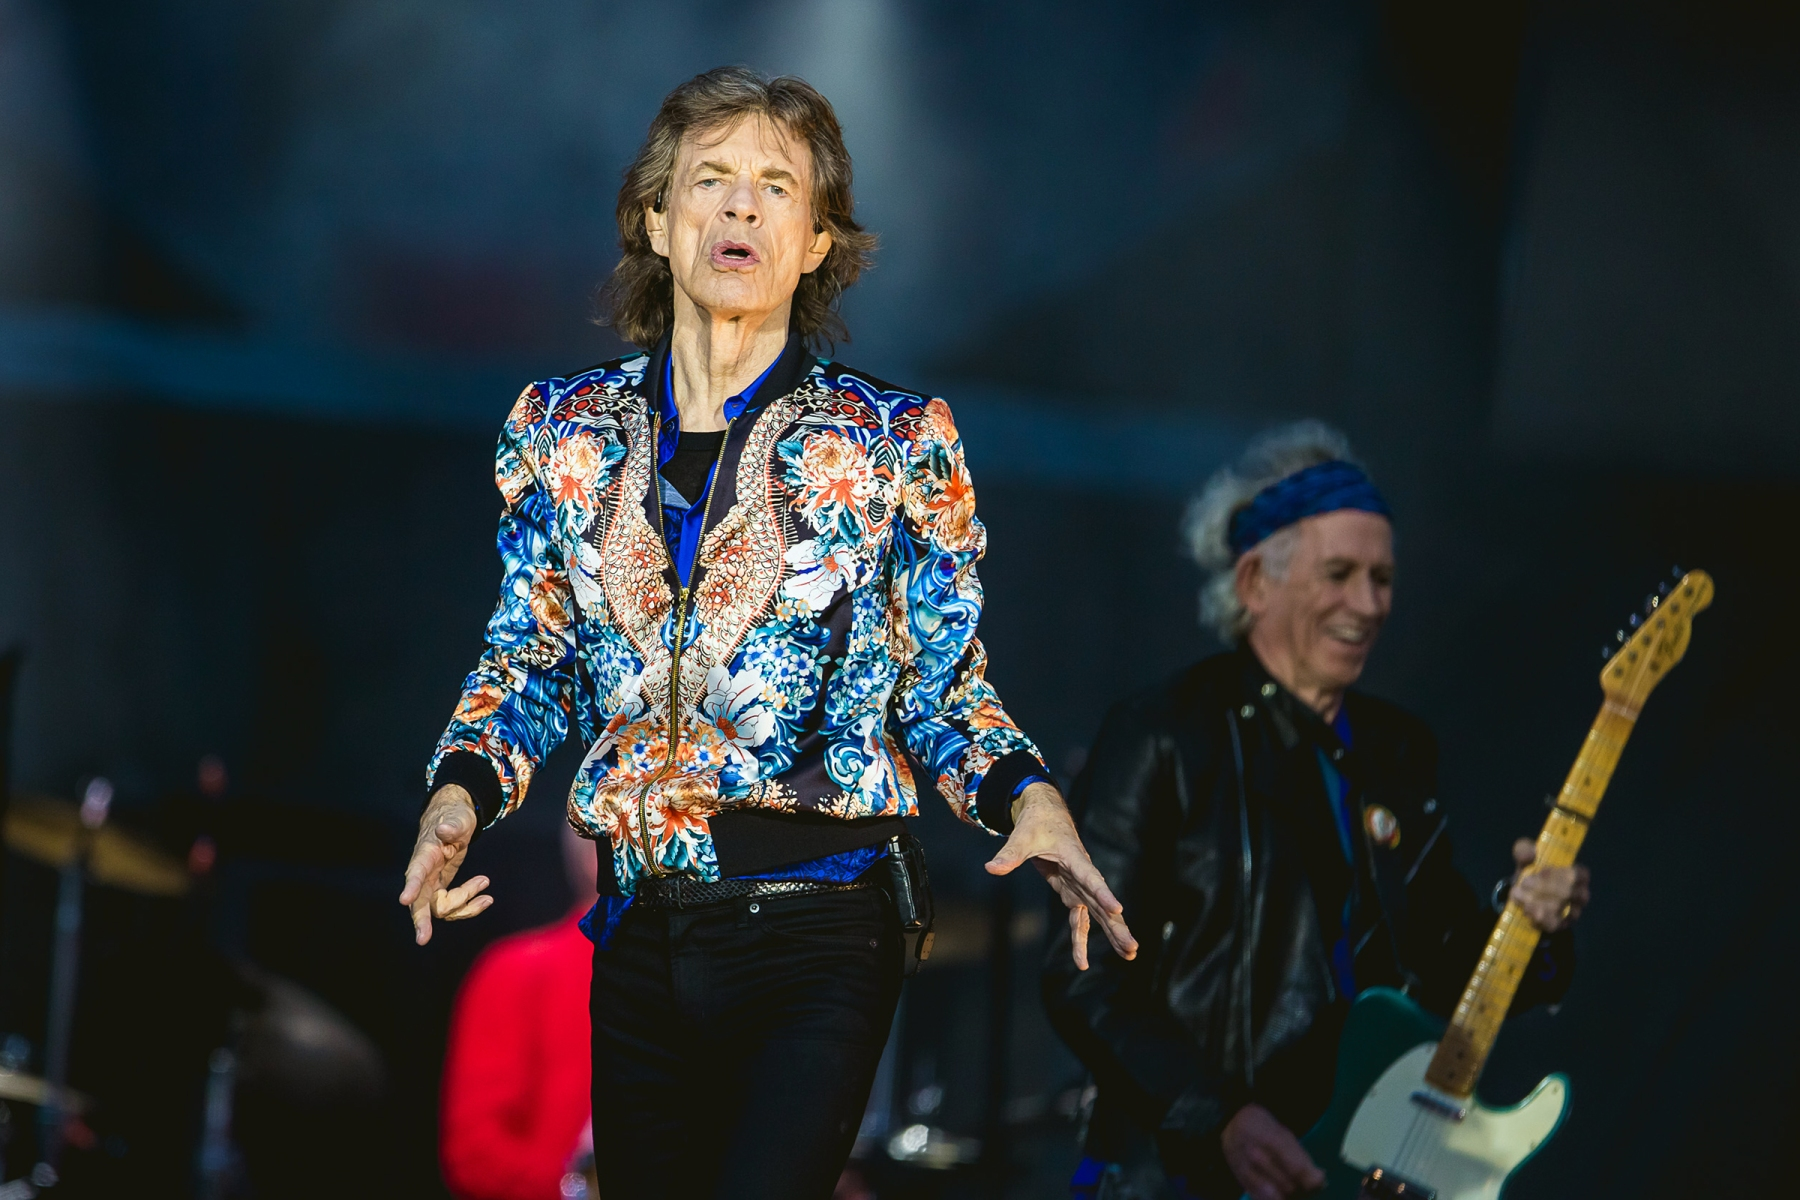 The Rolling Stones - Mick JaggerThe Rolling Stones in concert at Old Trafford, Manchester, UK - 05 Jun 2018